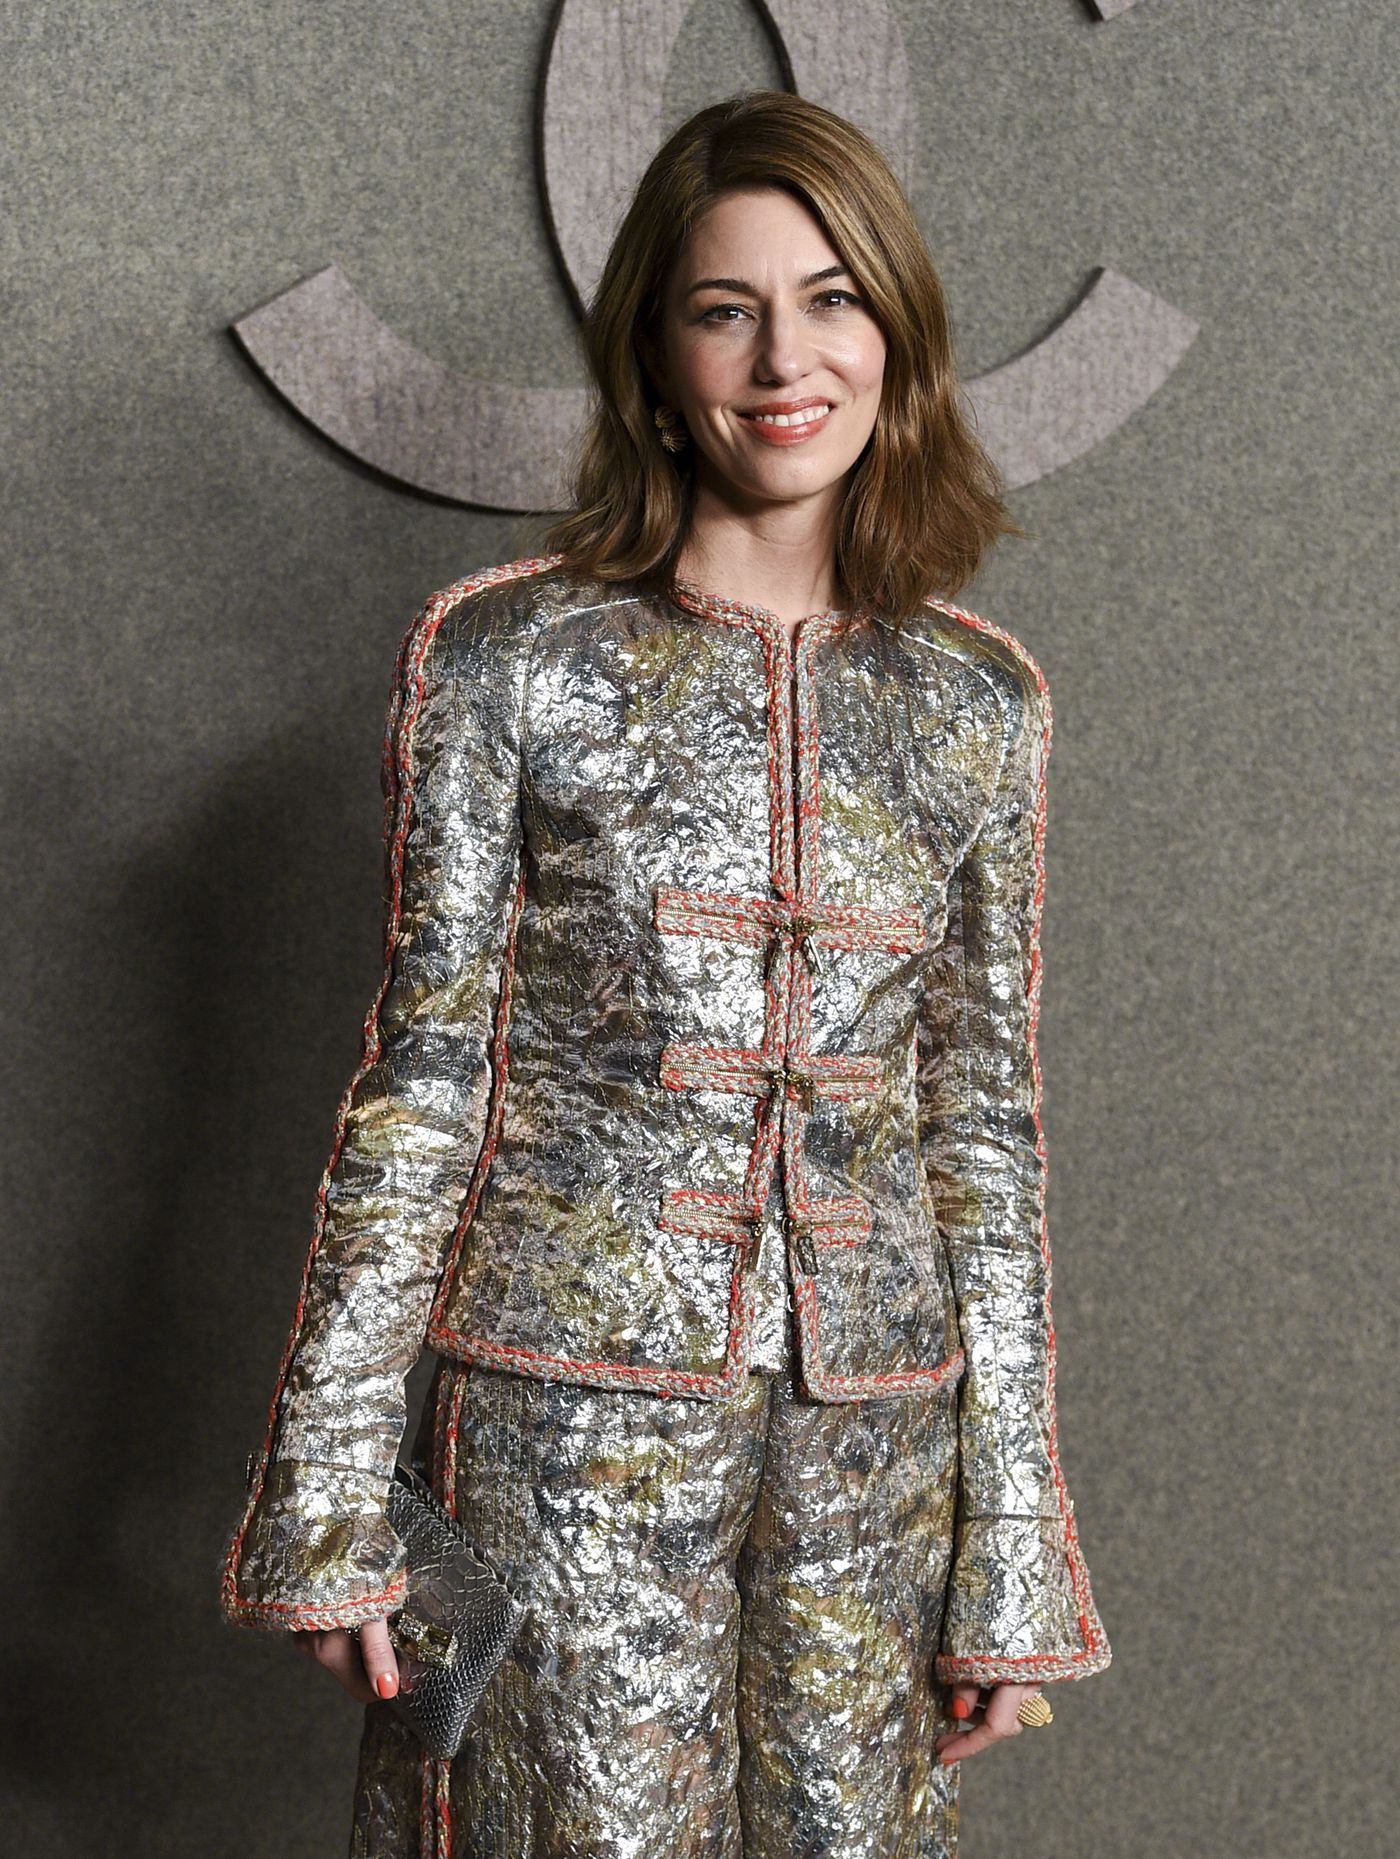 f80c3505ece Director Sofia Coppola attends the Chanel Metiers D Art 2018 19 Show at the